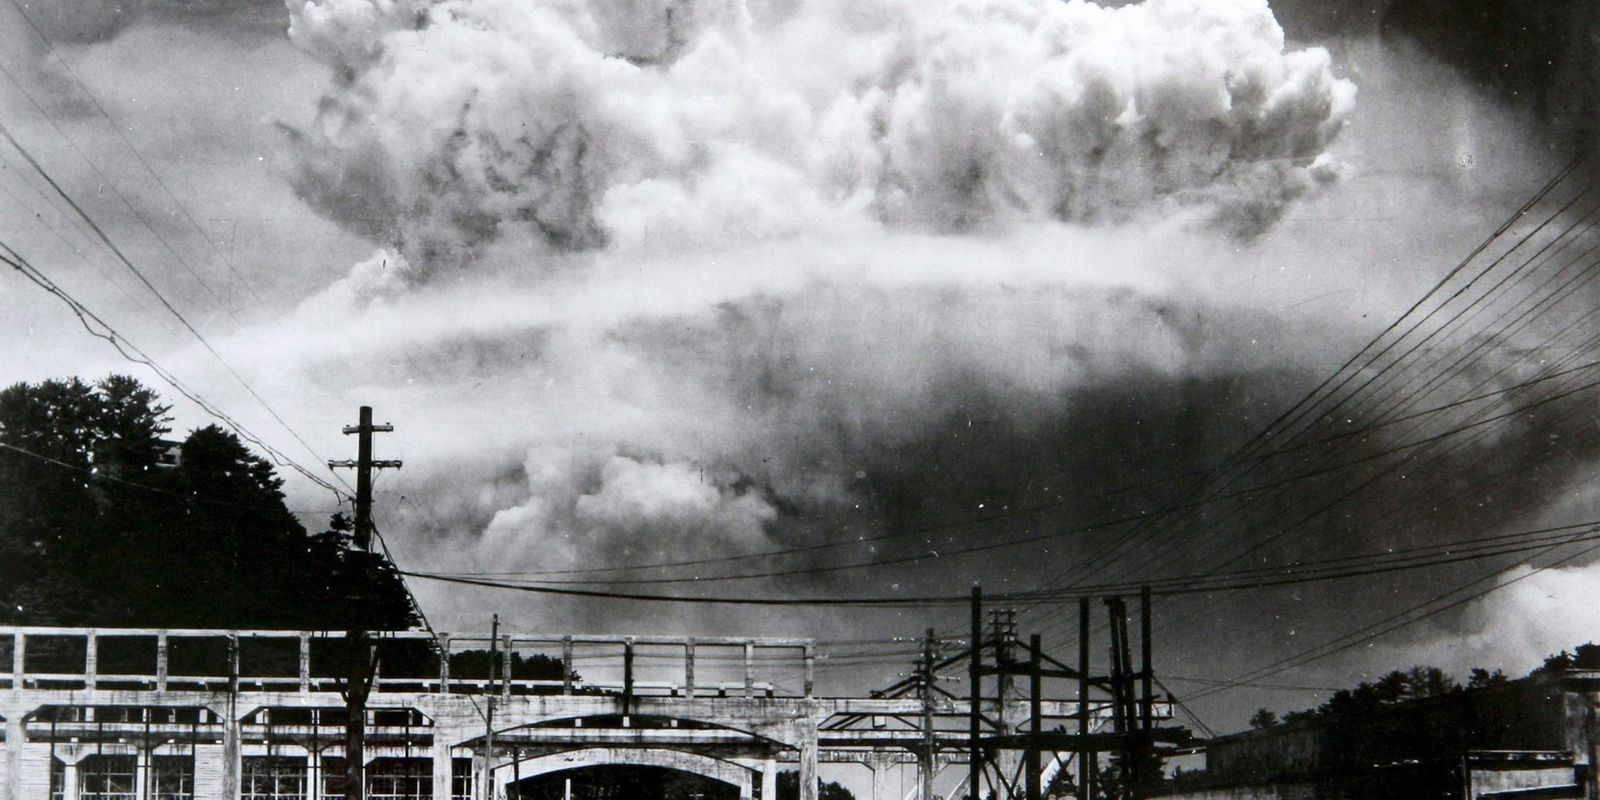 Twists of fate made Nagasaki a target 75 years ago